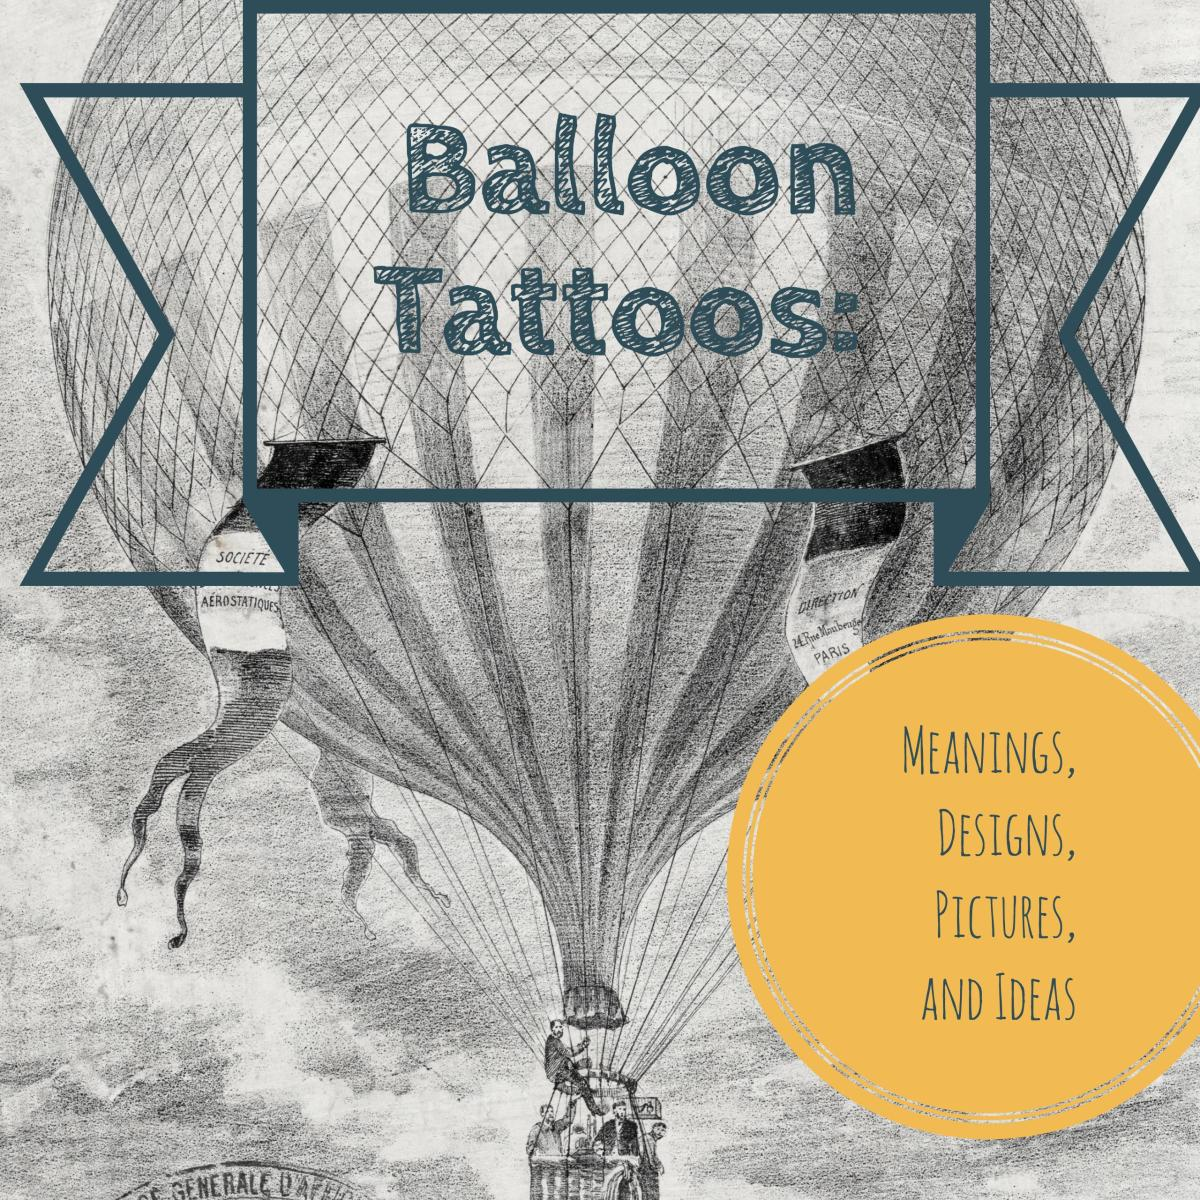 Balloon tattoos meanings designs pictures and ideas tatring biocorpaavc